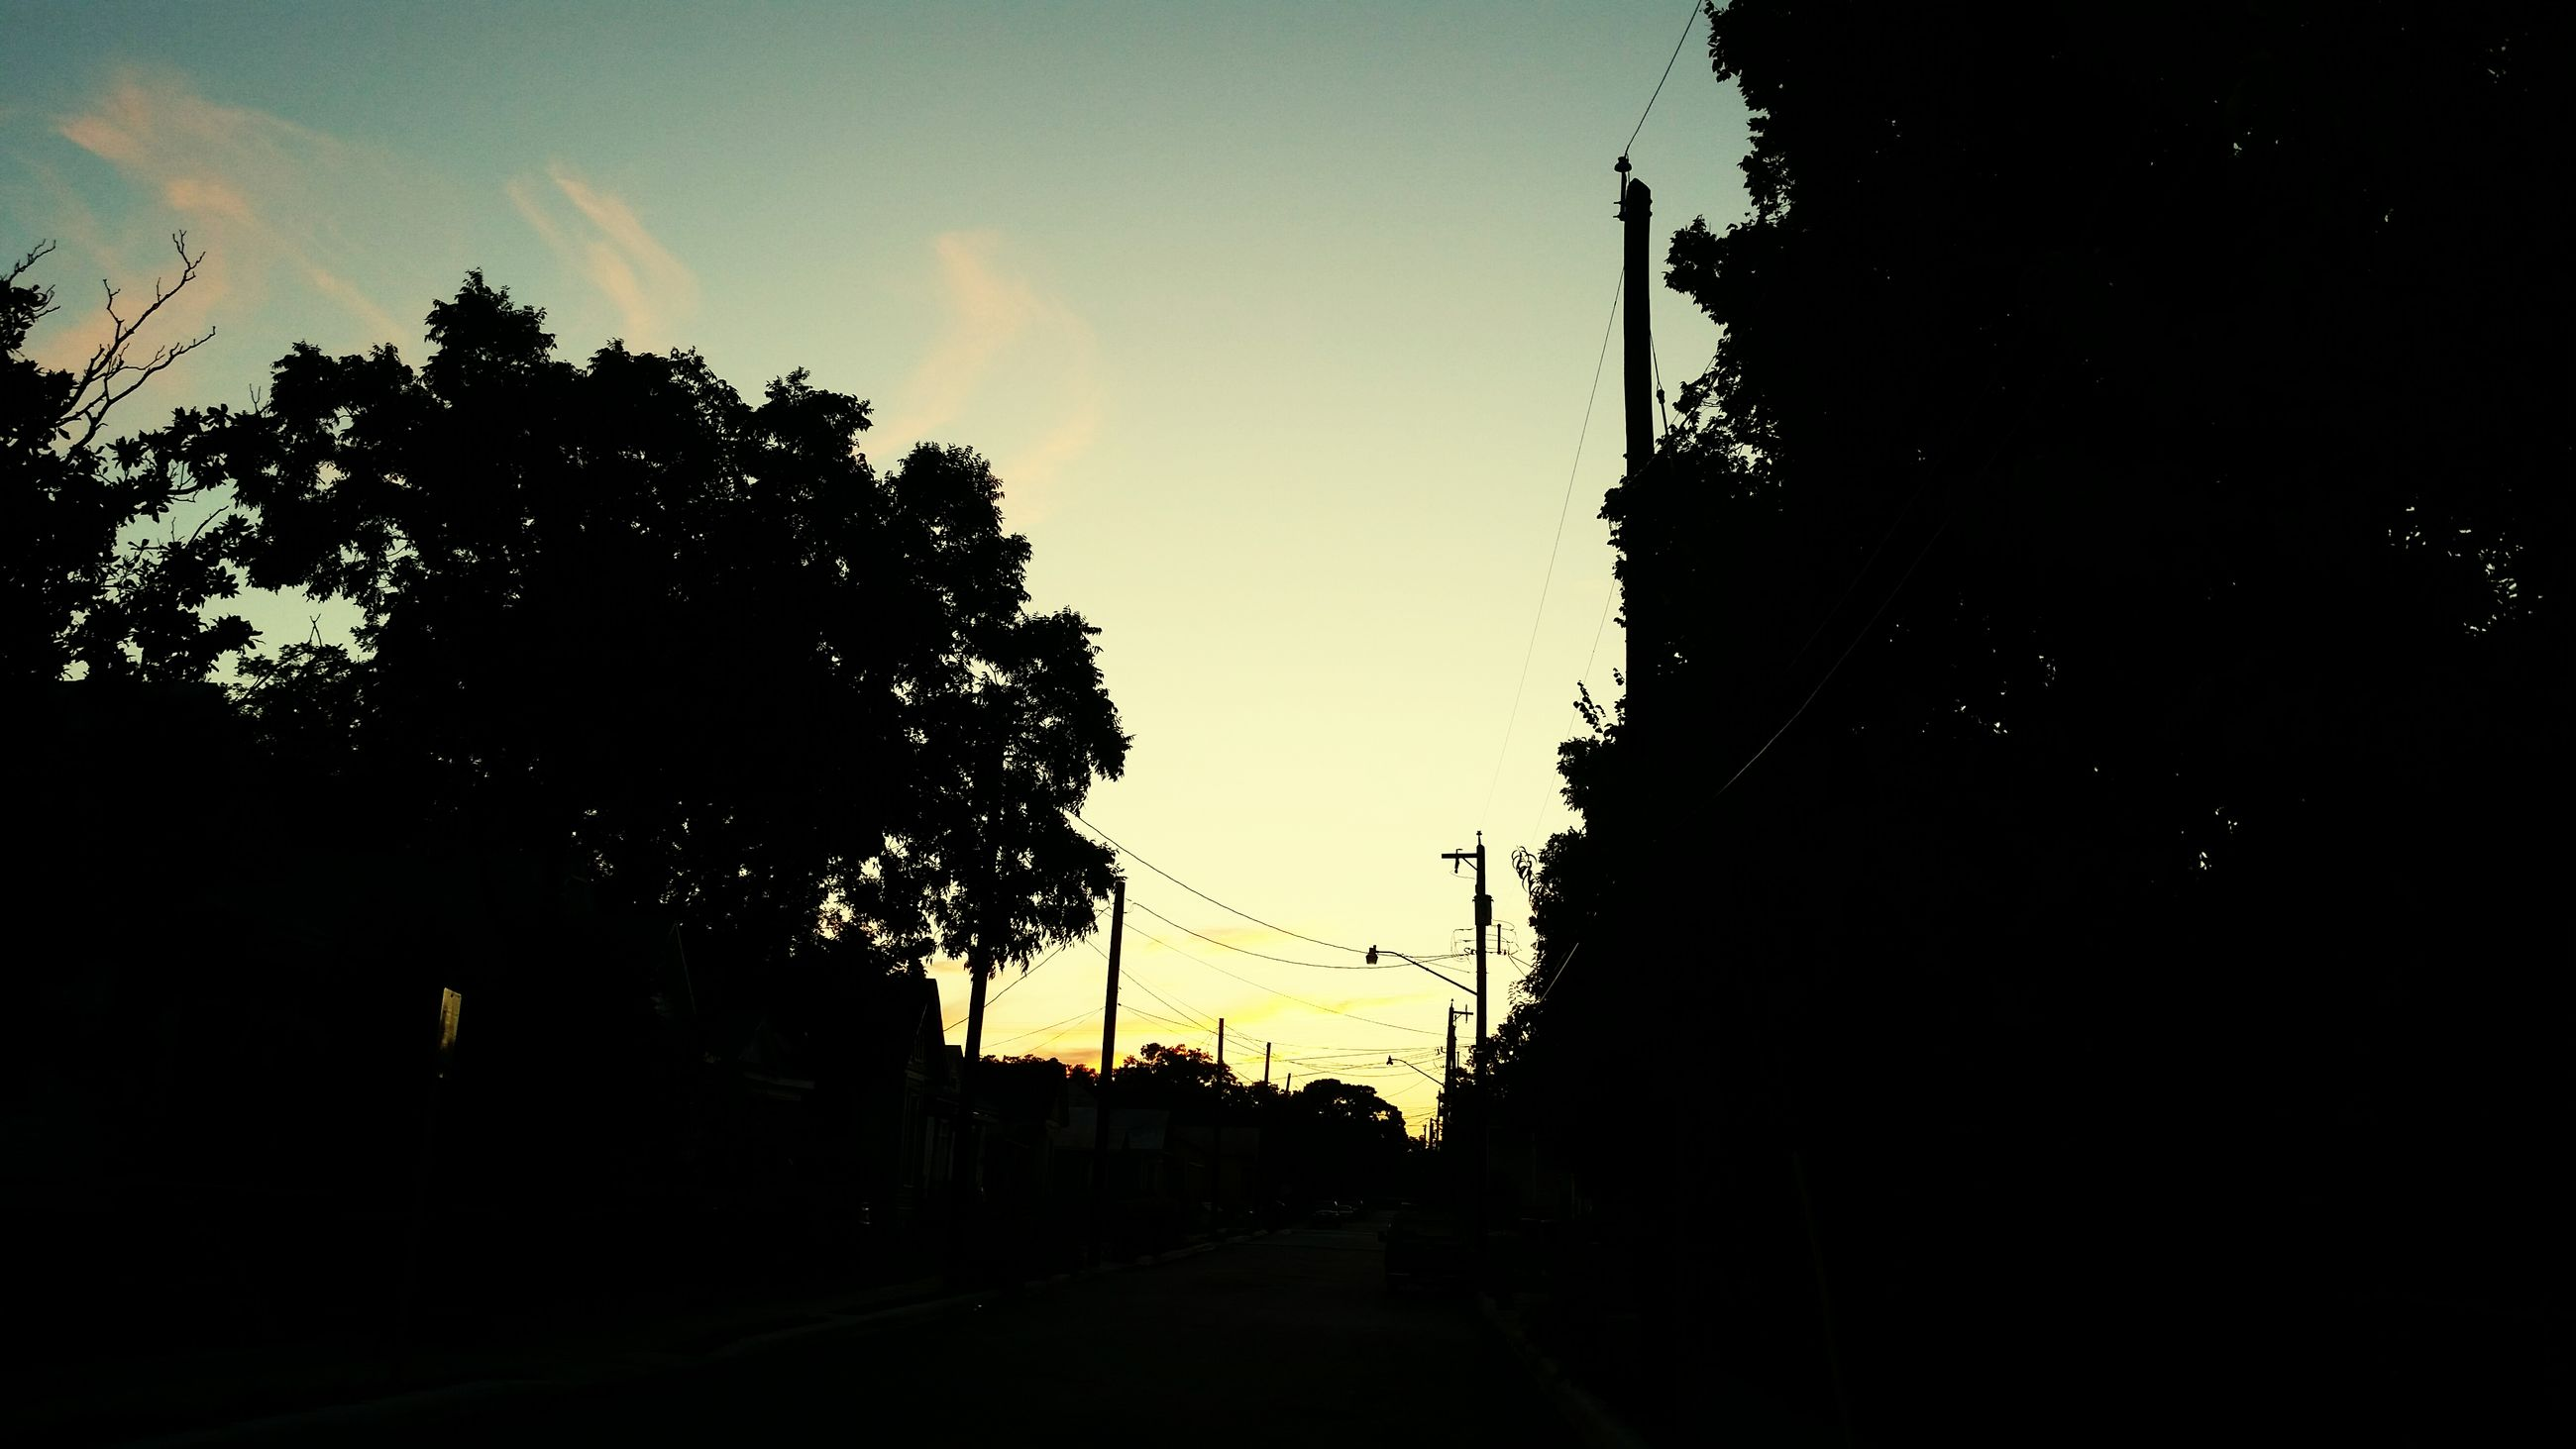 silhouette, built structure, architecture, sky, building exterior, sunset, low angle view, tree, dark, dusk, the way forward, house, outdoors, no people, nature, cloud, building, outline, sunlight, street